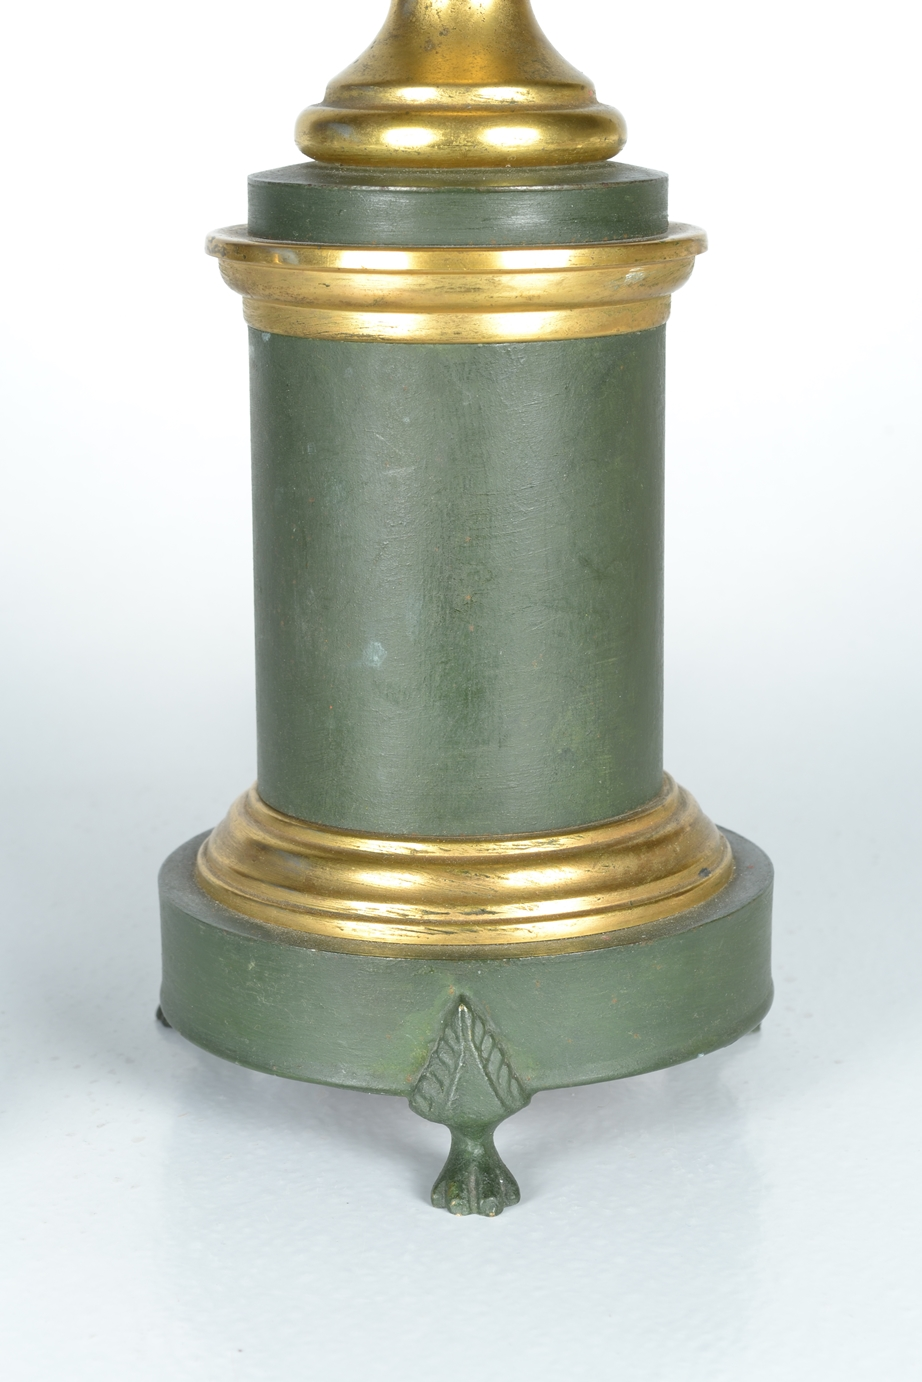 View 4: Green Tole Lamp